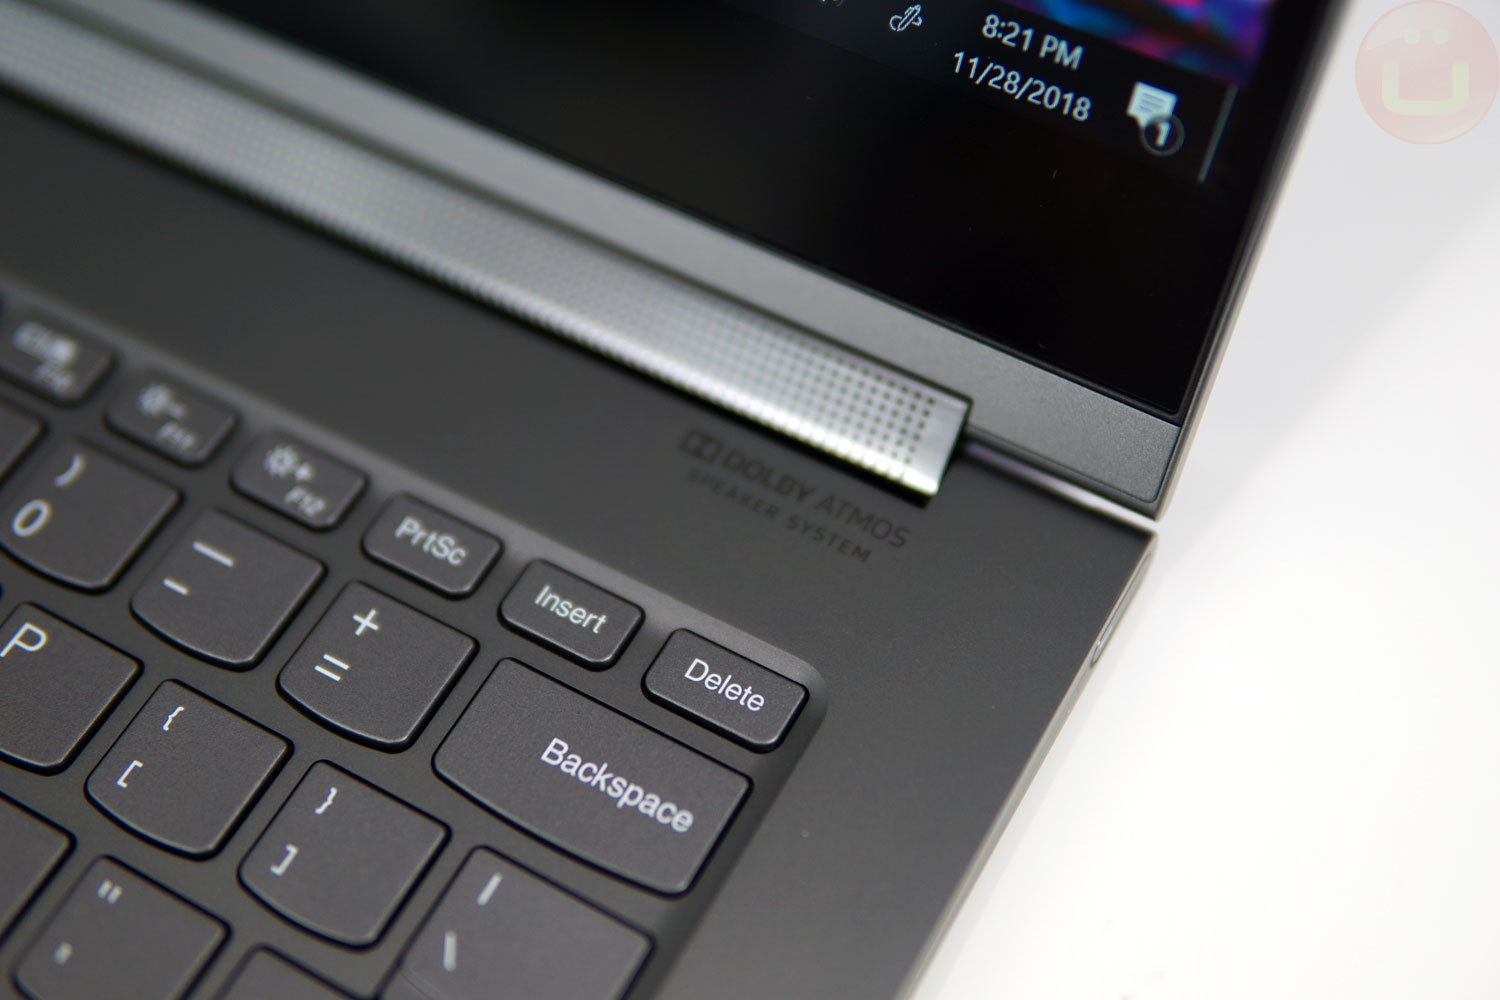 Lenovo Yoga C930 Review: Ultimate Multimedia Thin & Light